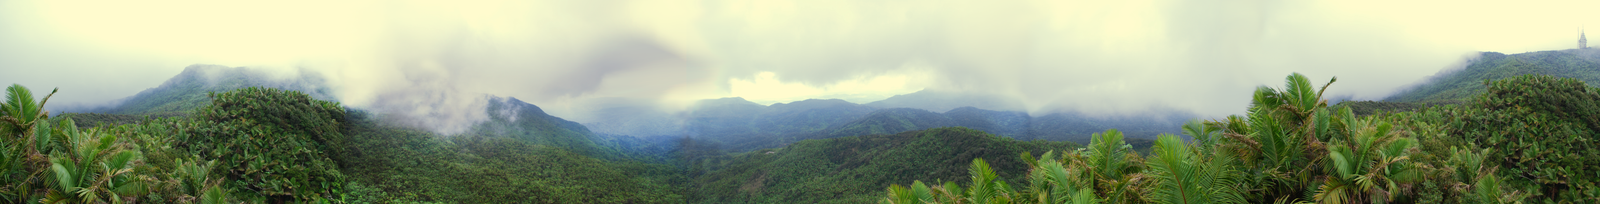 El Yunque Panorama by CompassLogic